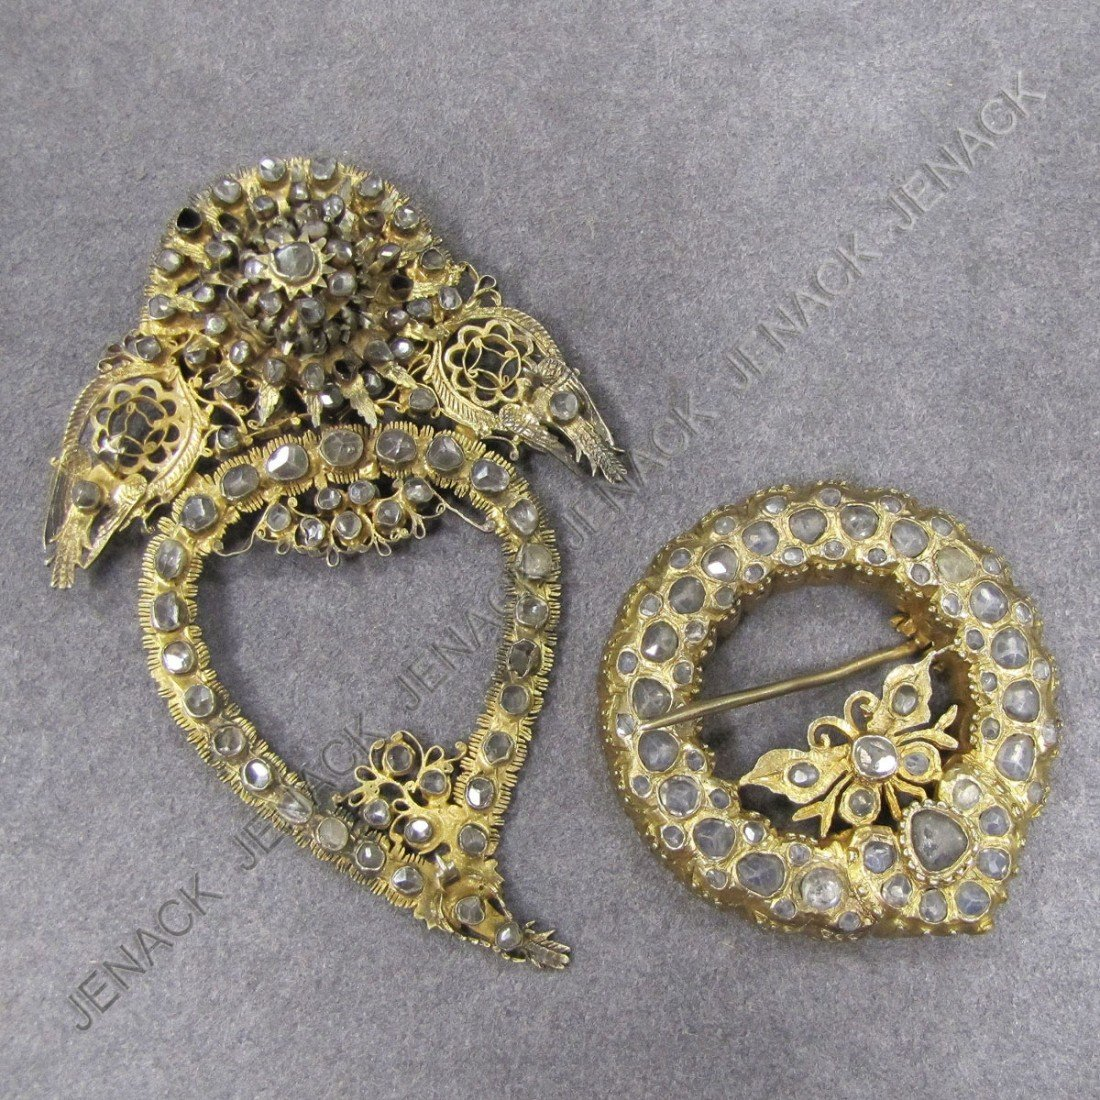 12: LOT (2) ANTIQUE GILT SILVER BROOCHES